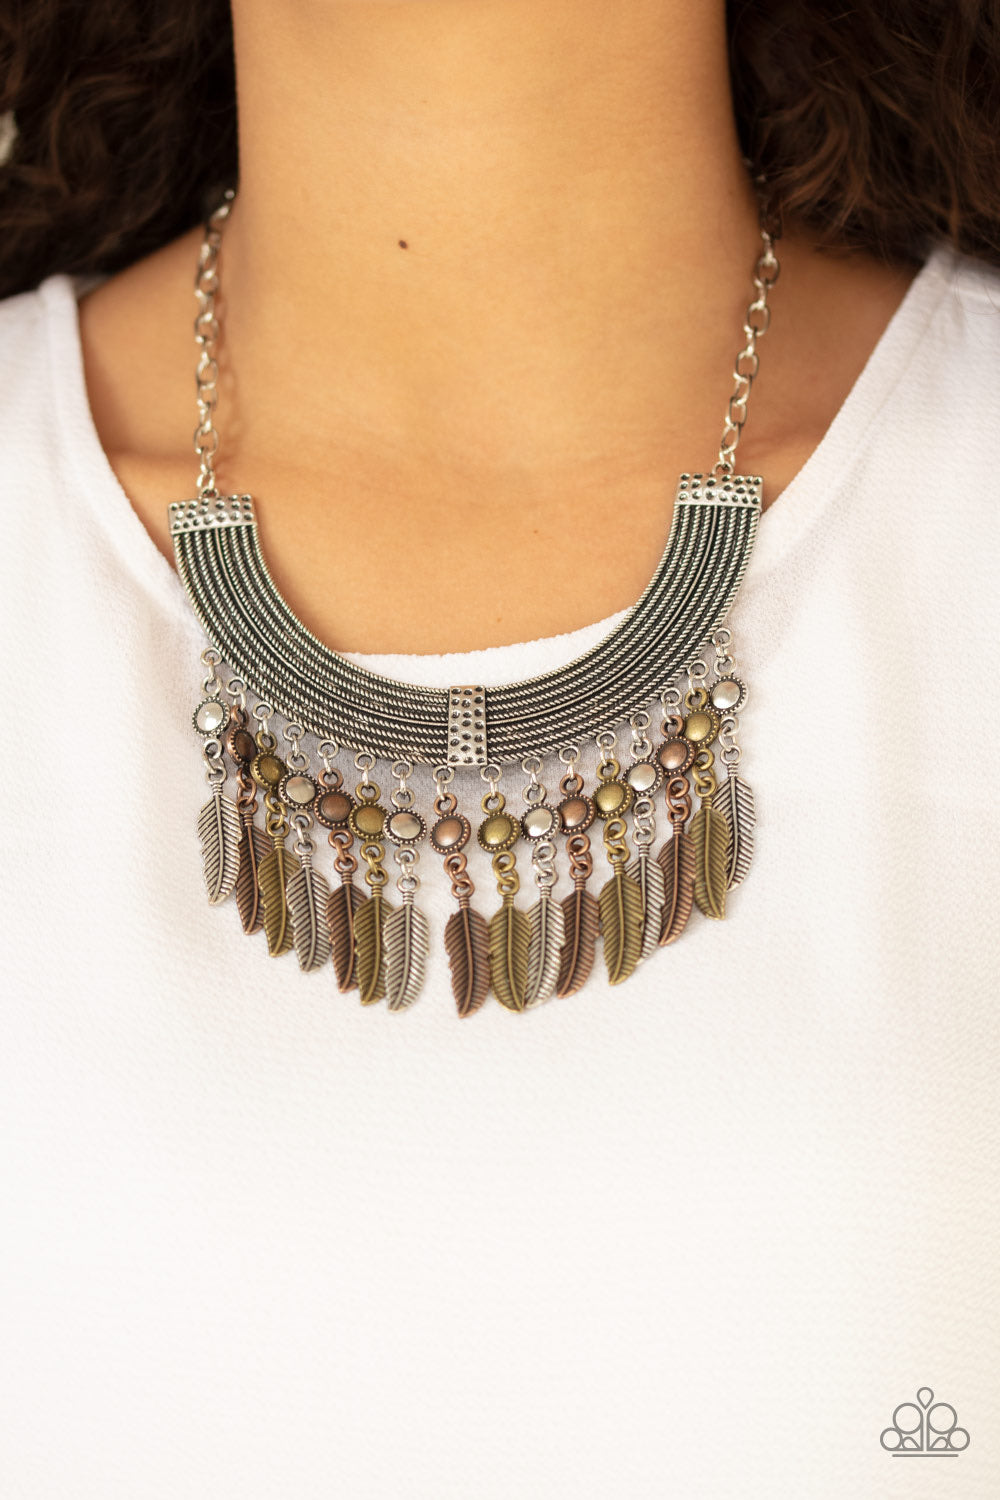 Paparazzi Jewelry Necklace Fierce in Feathers - Multi